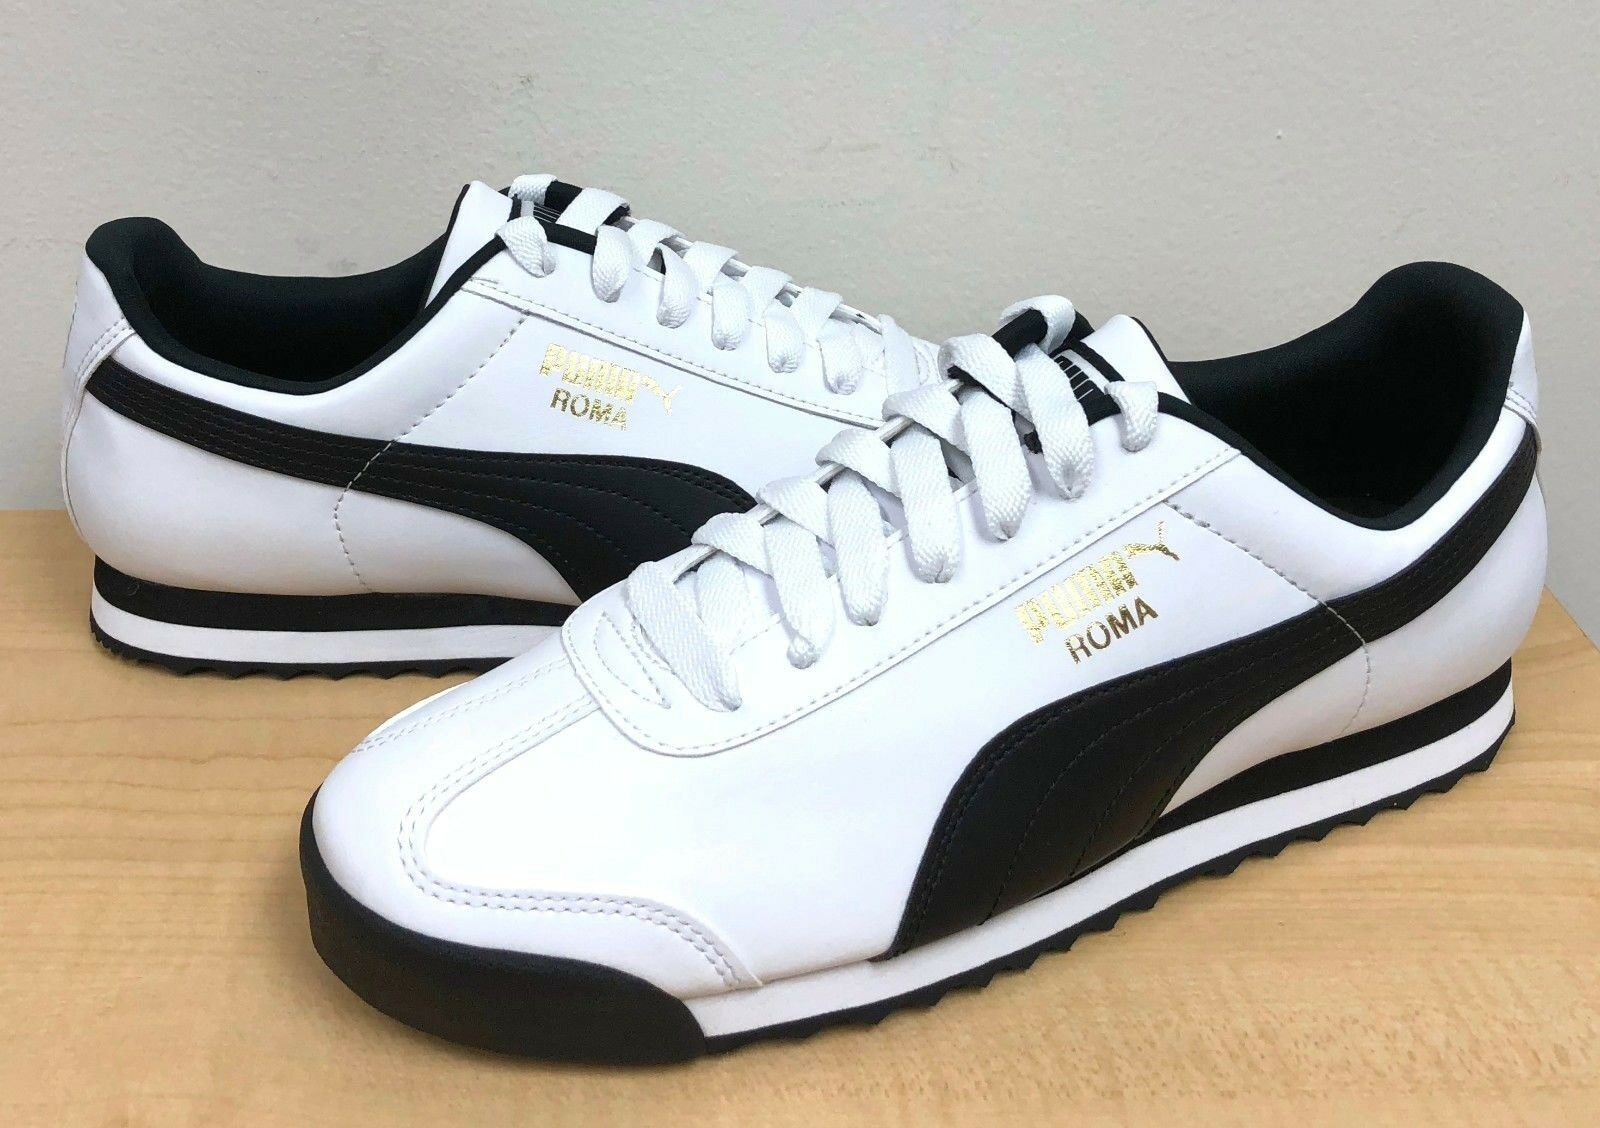 PUMA MEN ROMA BASIC 353572 04 White-Black